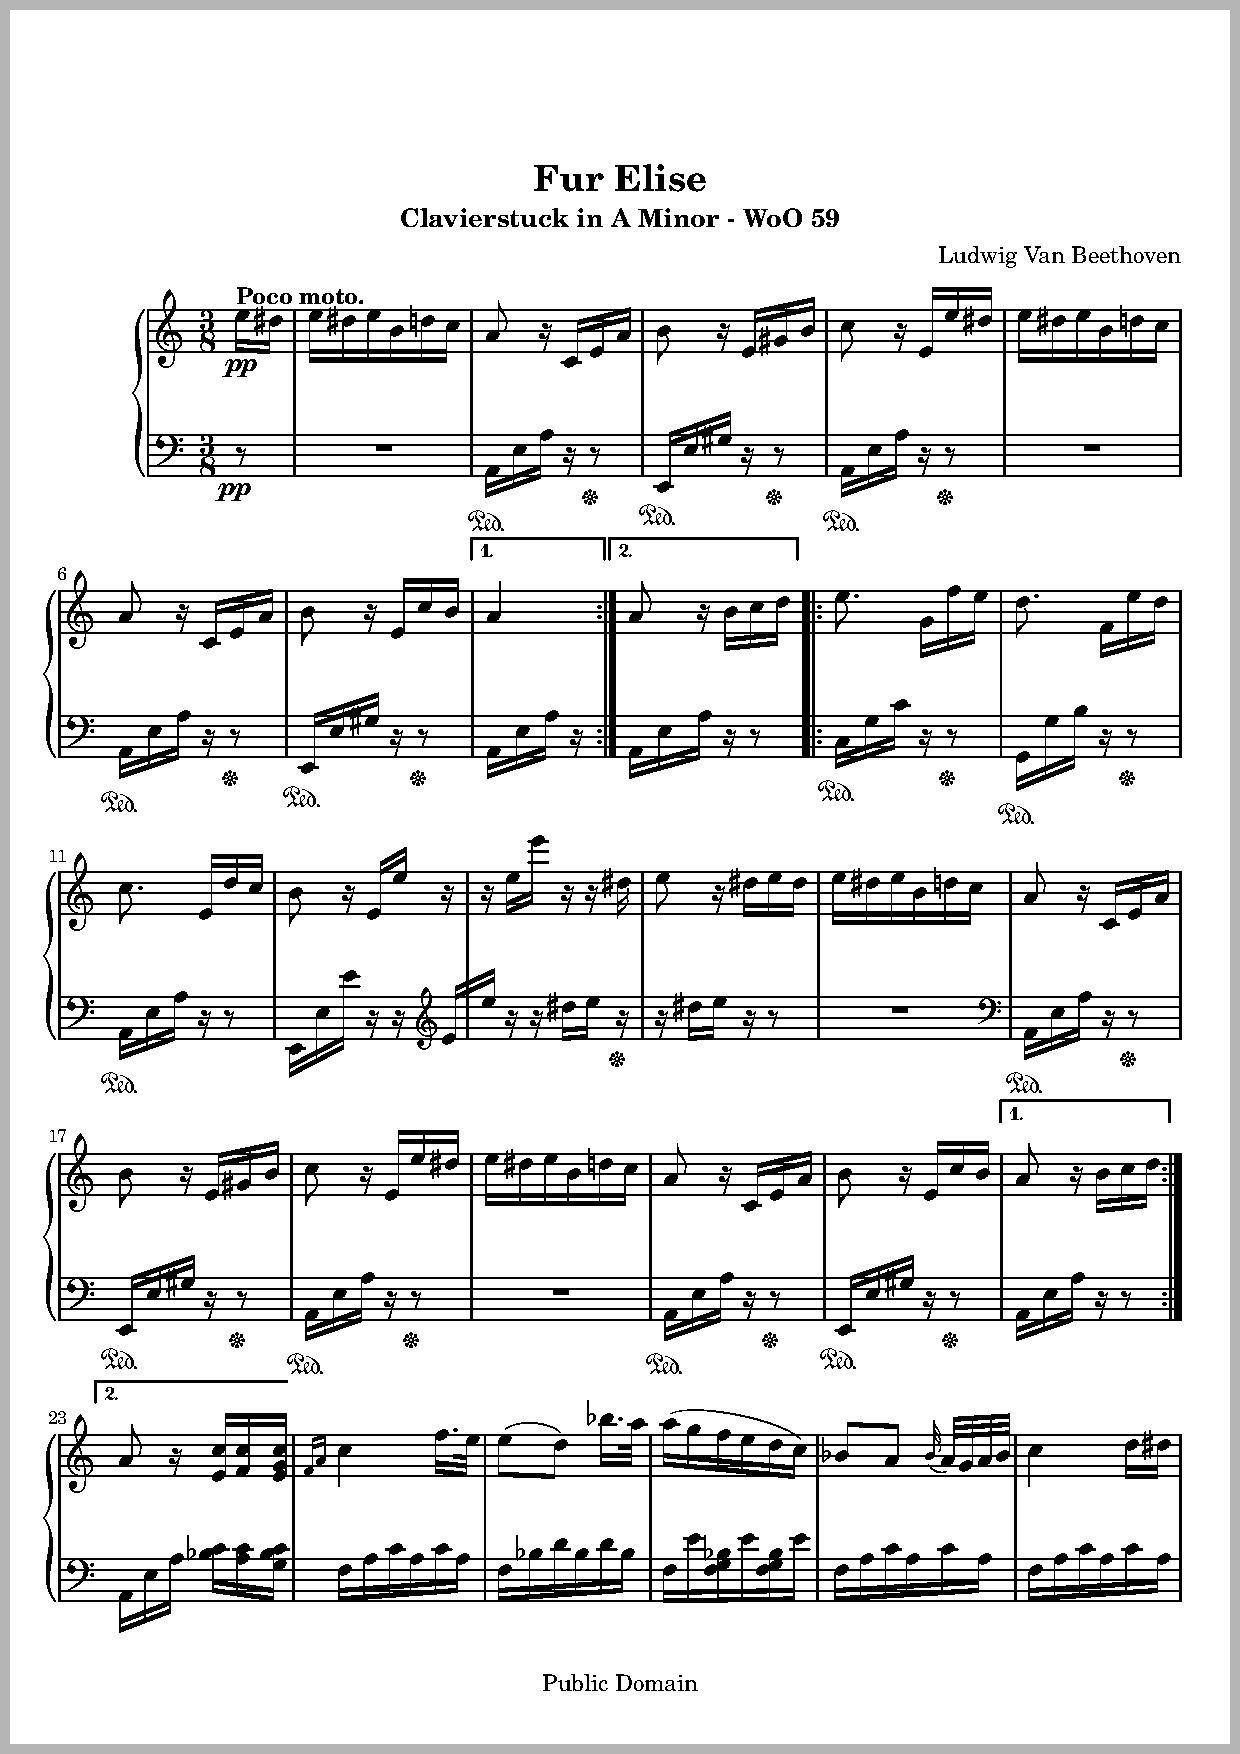 Ring Of Fire Chords Ring Of Fire Chords 459385 File Imslp Fur Elise Beethoven Woo59 Pdf